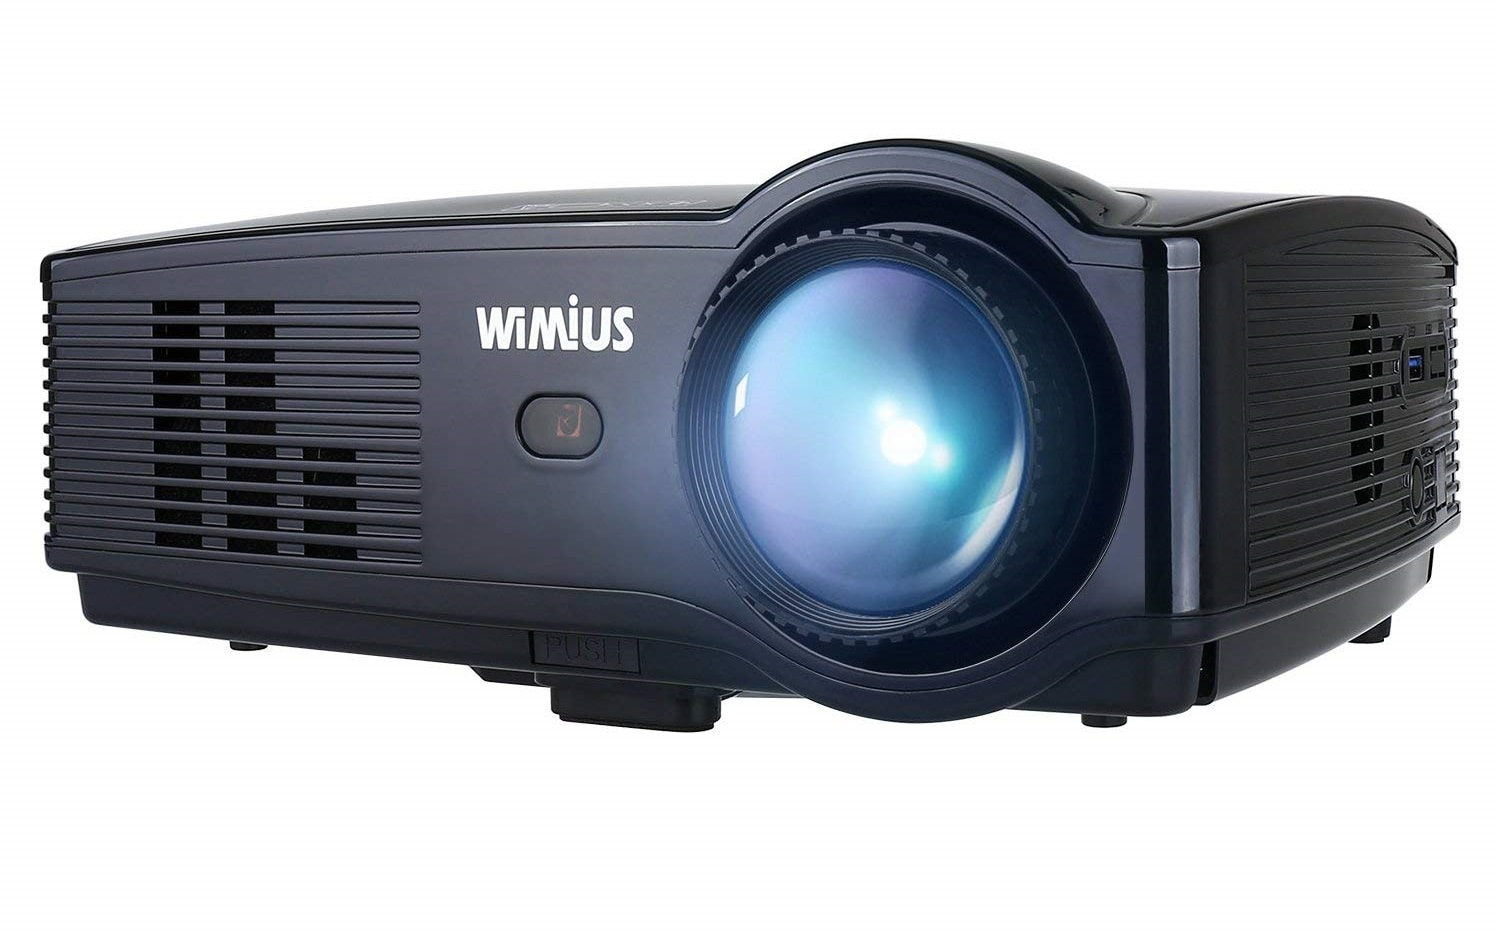 WIMIUS T4 3500 Lumens Video outdoor Projector Support 1080P 200 Display HDMI VGA AV USB-min